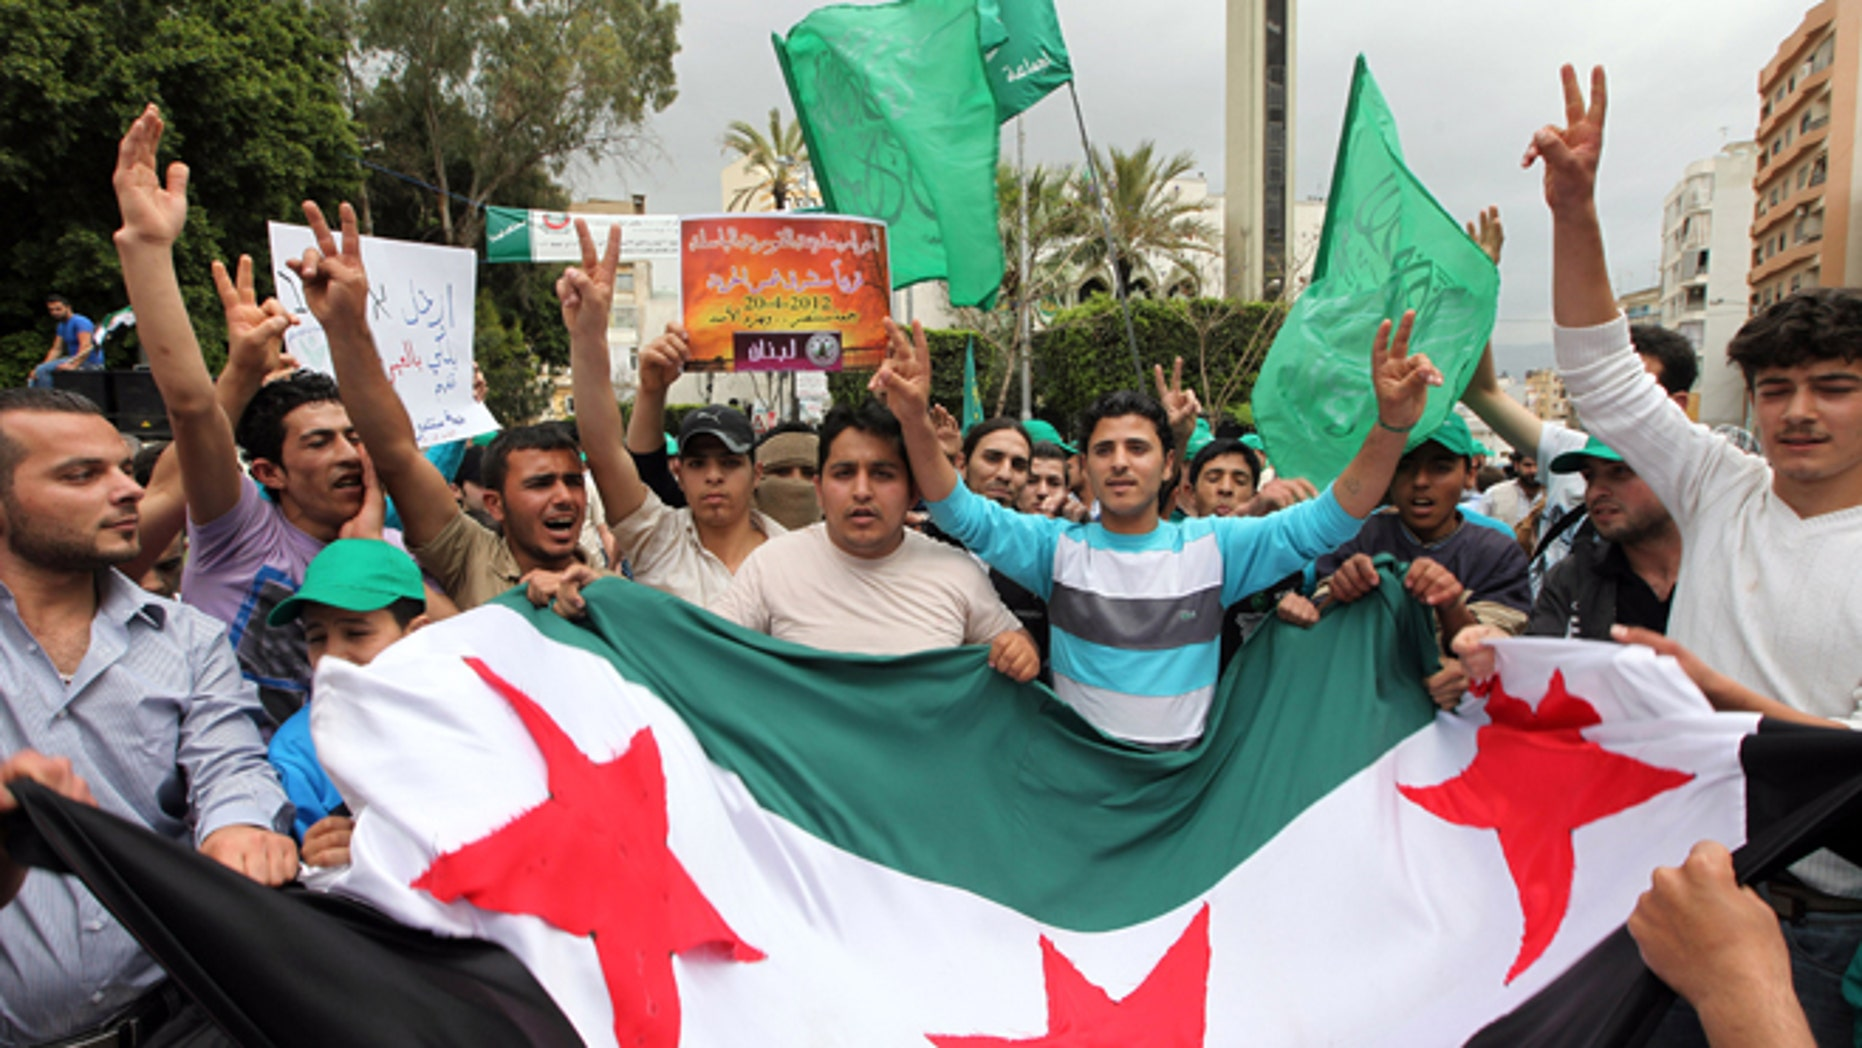 April 20, 2012: Supporters of an Islamic group and Lebanon's Future Movement of former Prime Minister Saad Hariri, wave their party flags and a giant Syrian revolution flag, and shout slogans as they march during a demonstration against the Syrian regime and to show their solidarity with the Syrian people, after Friday prayers, in Beirut, Lebanon.